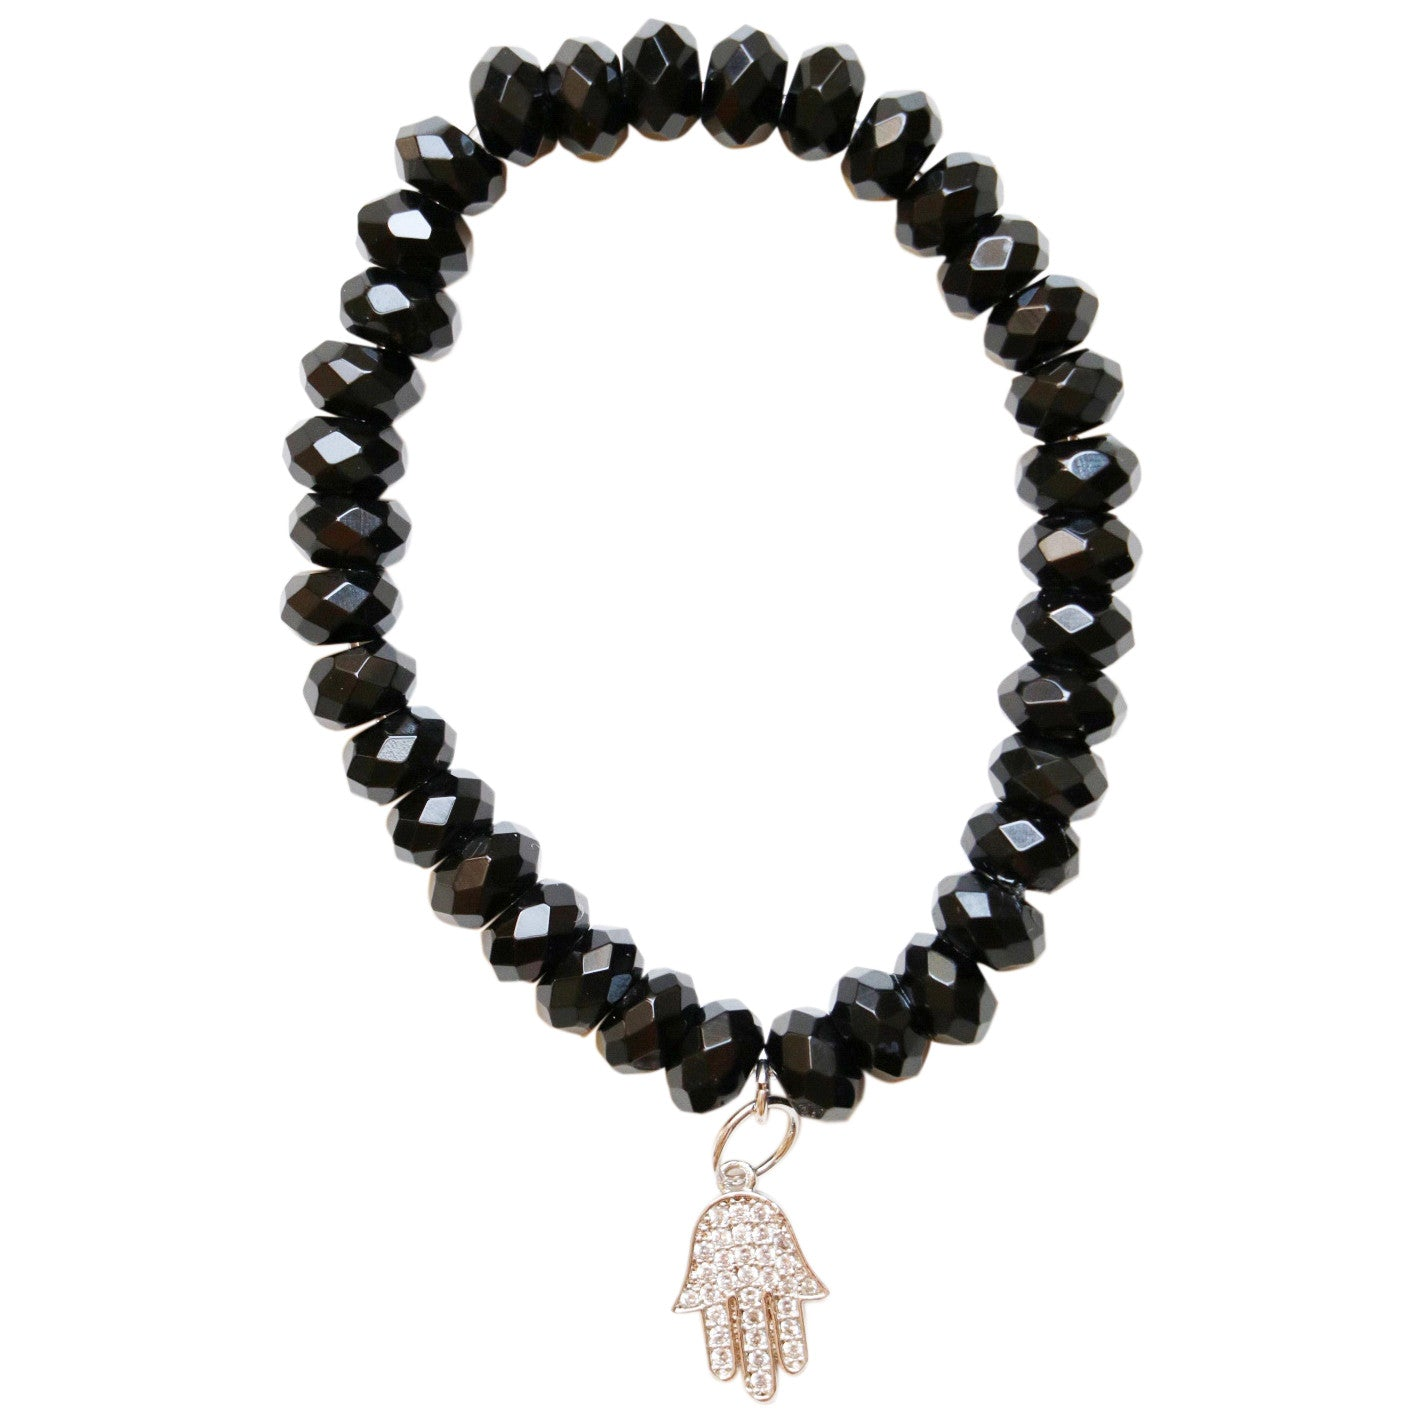 Molly Jane Designs Black Quartz Charm Bracelet